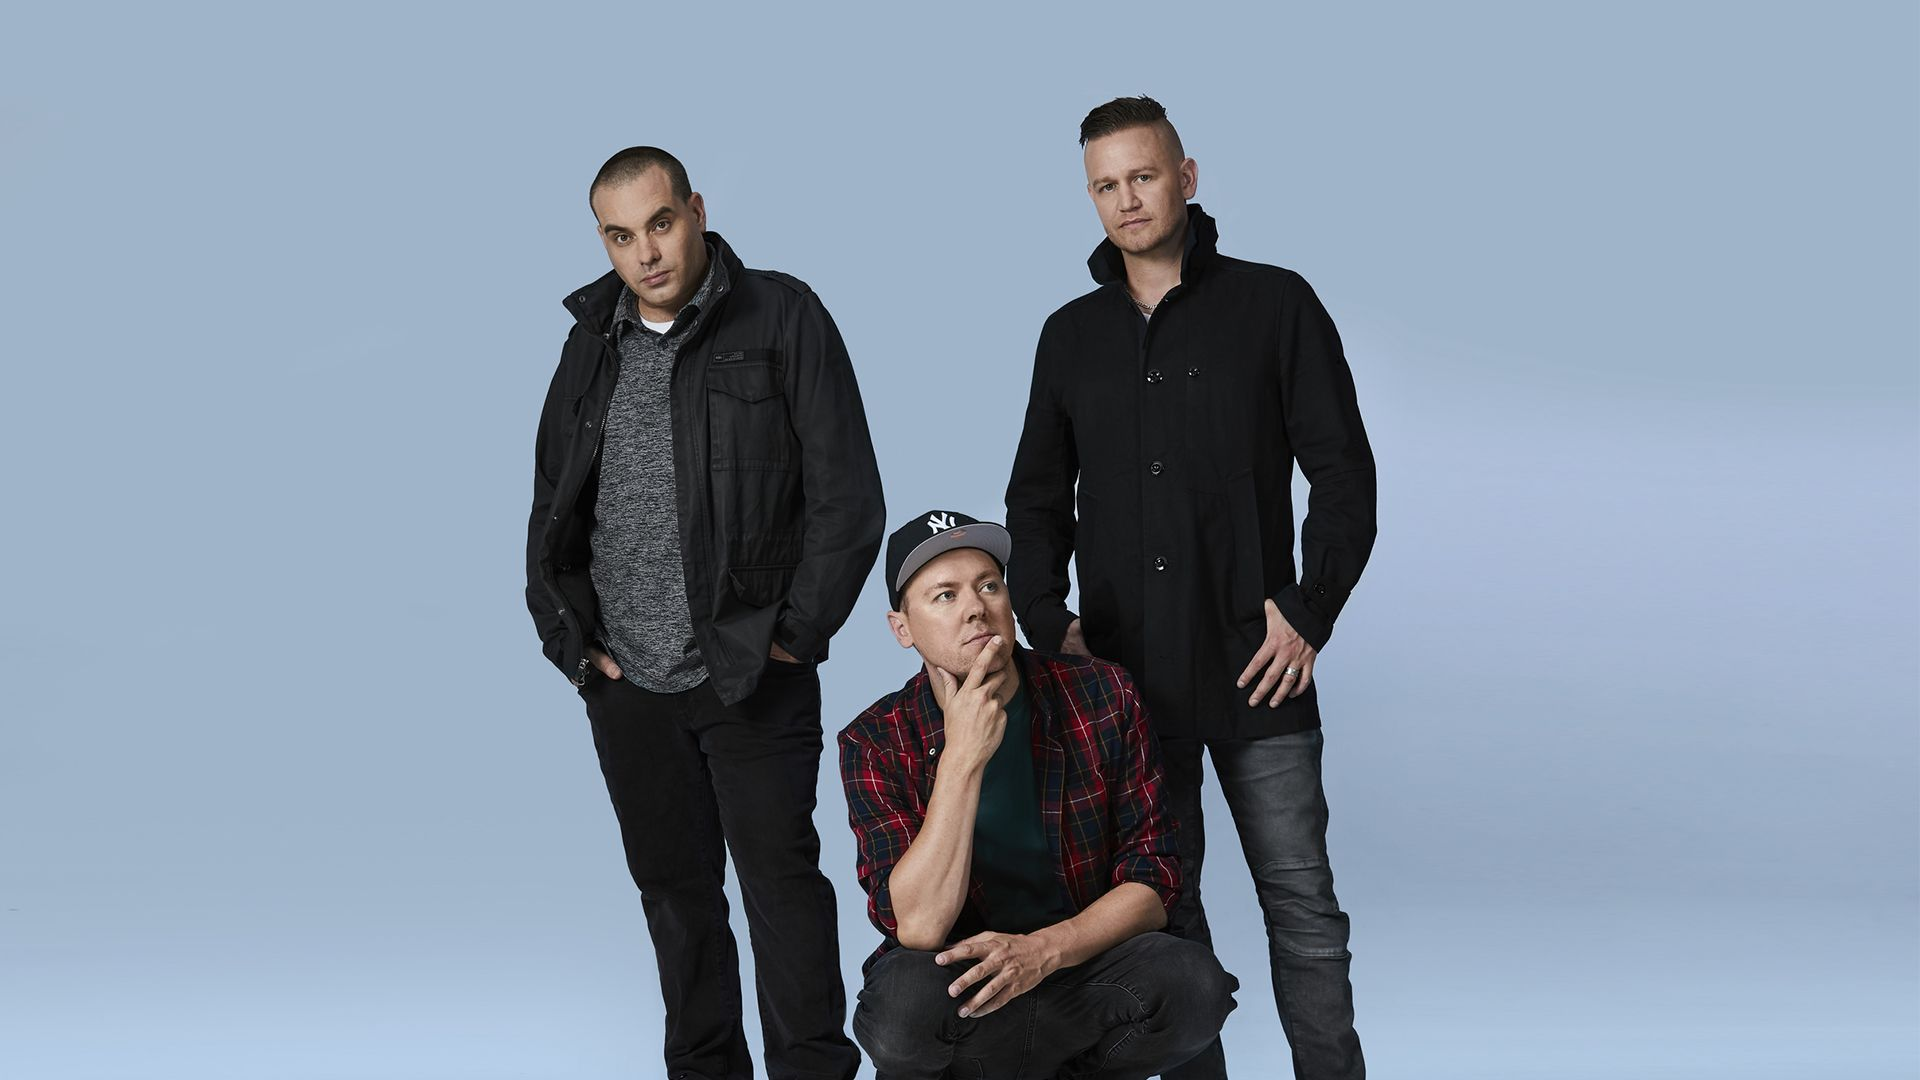 Listening To The Great Expanse By Hilltop Hoods